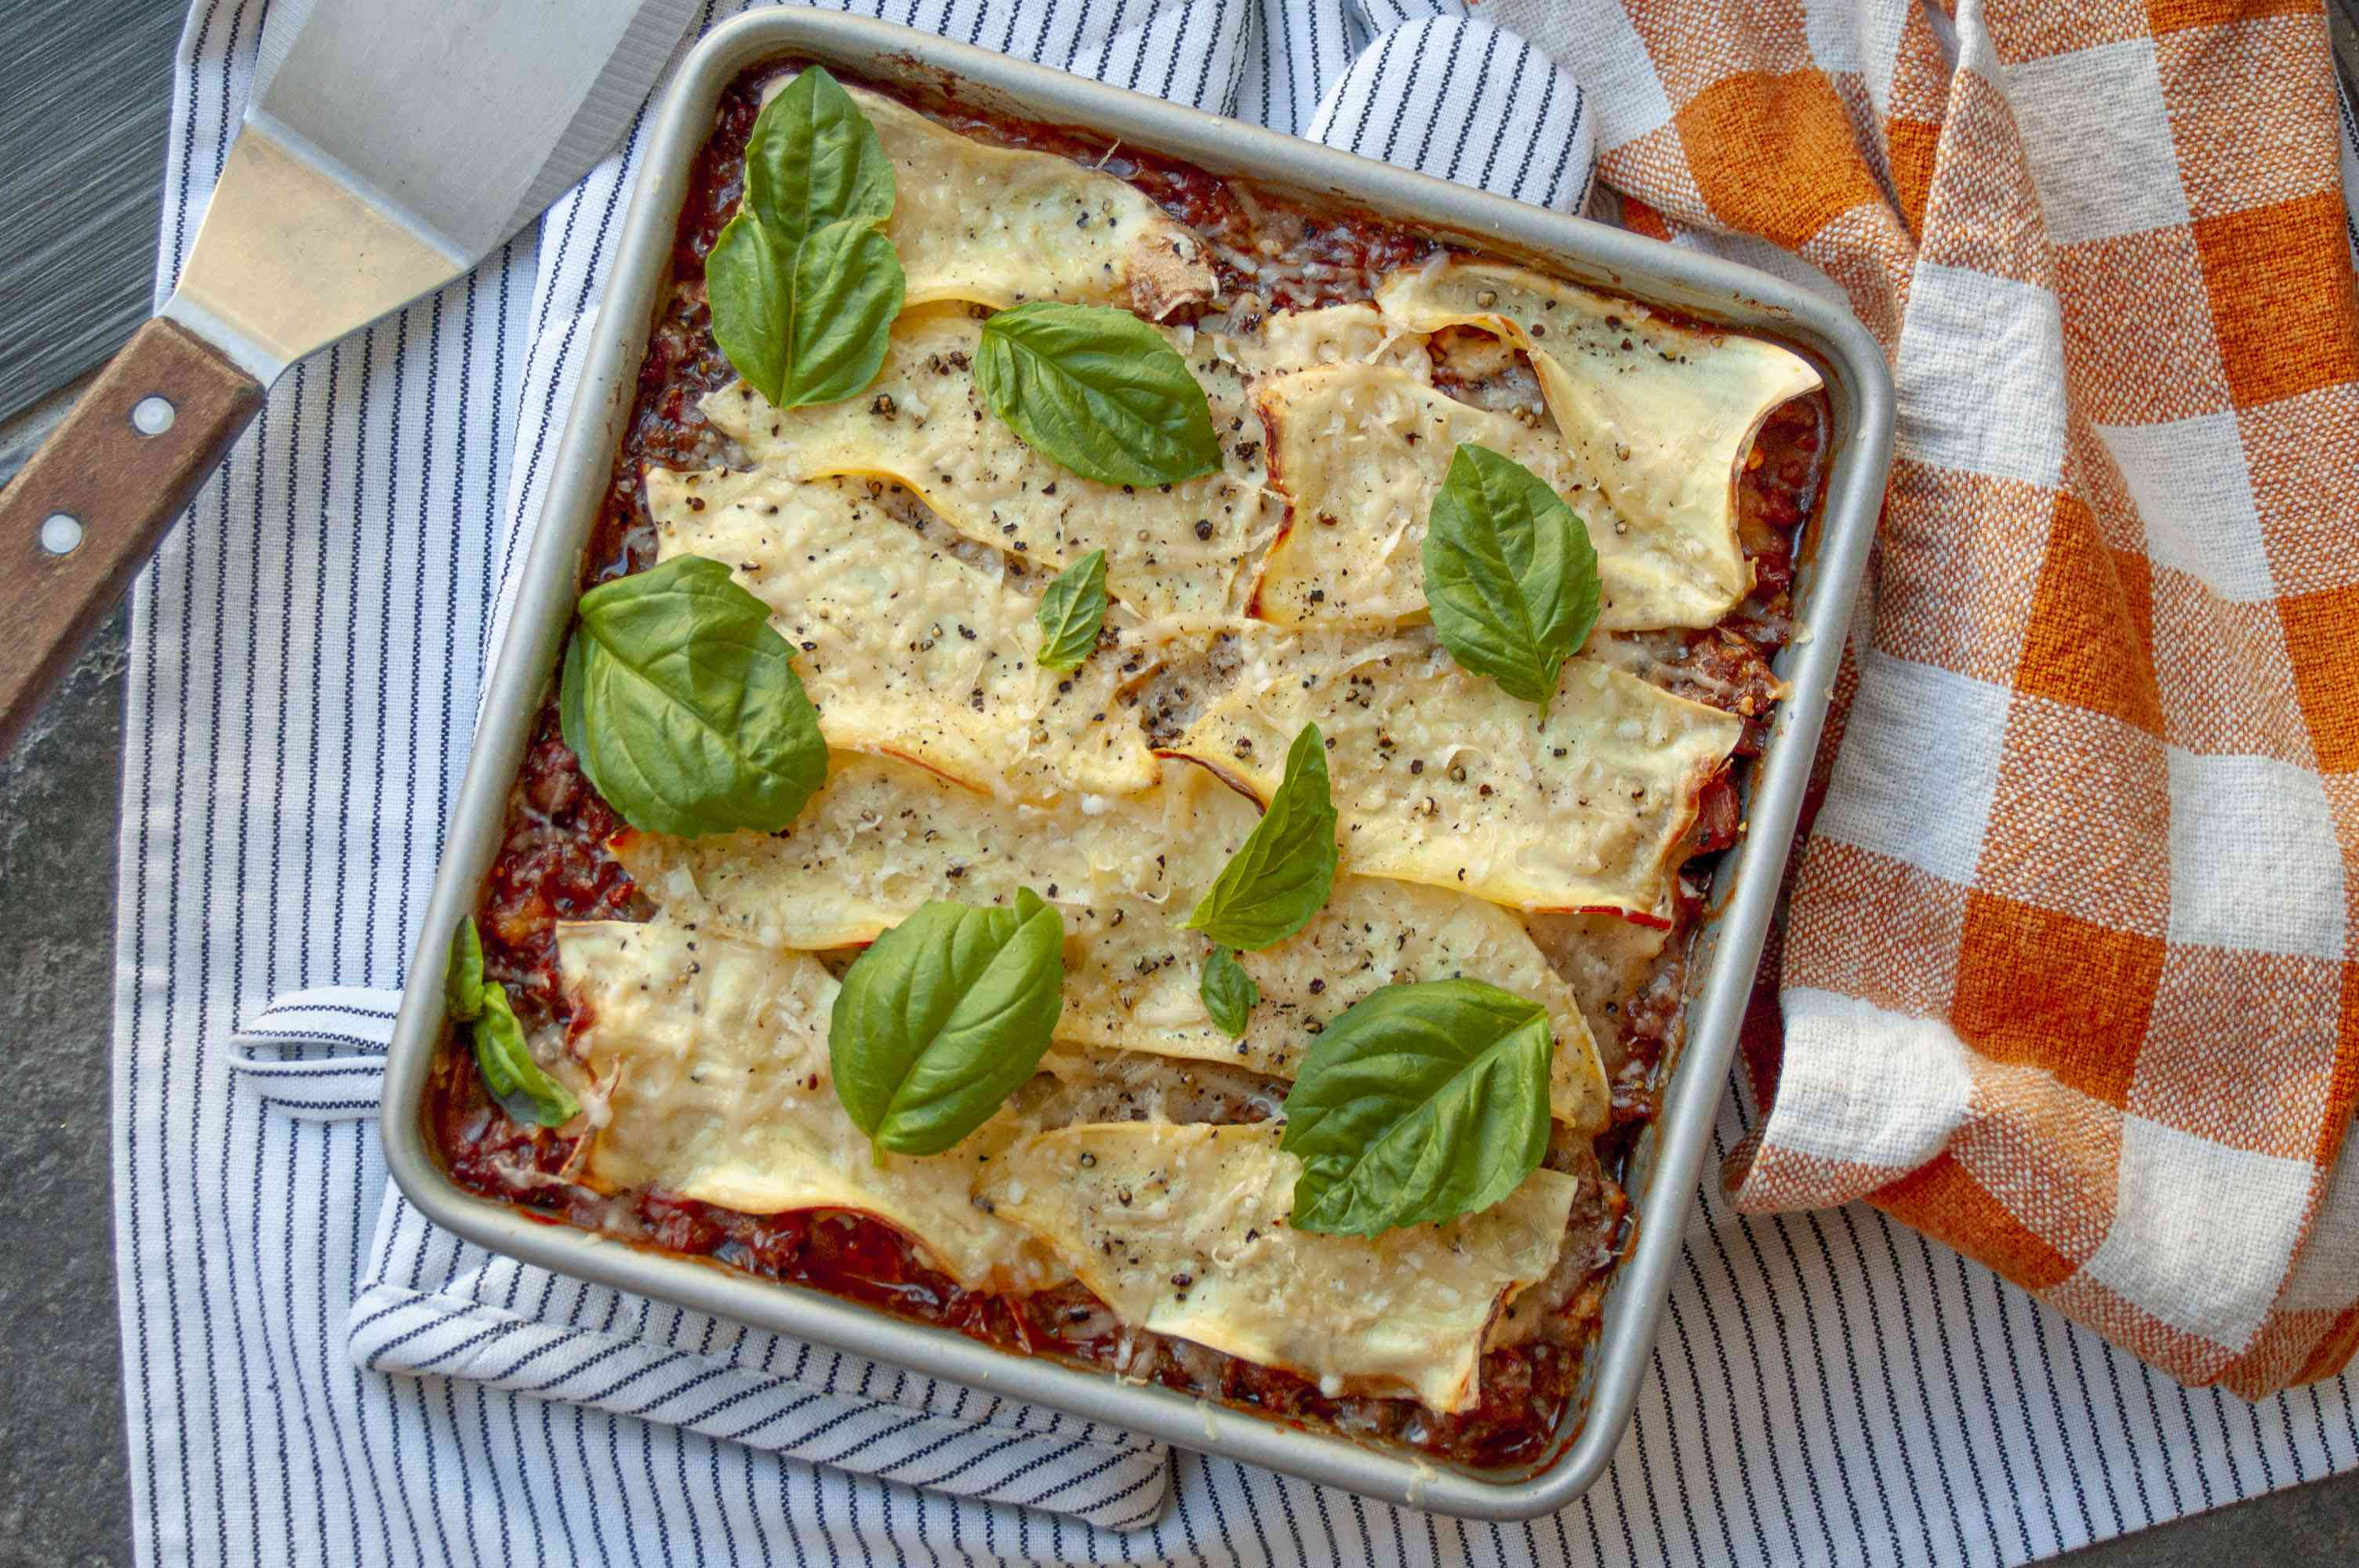 lasagna made with thiny sliced sweet potatoes instead of pasta topped with fresh basil leaves